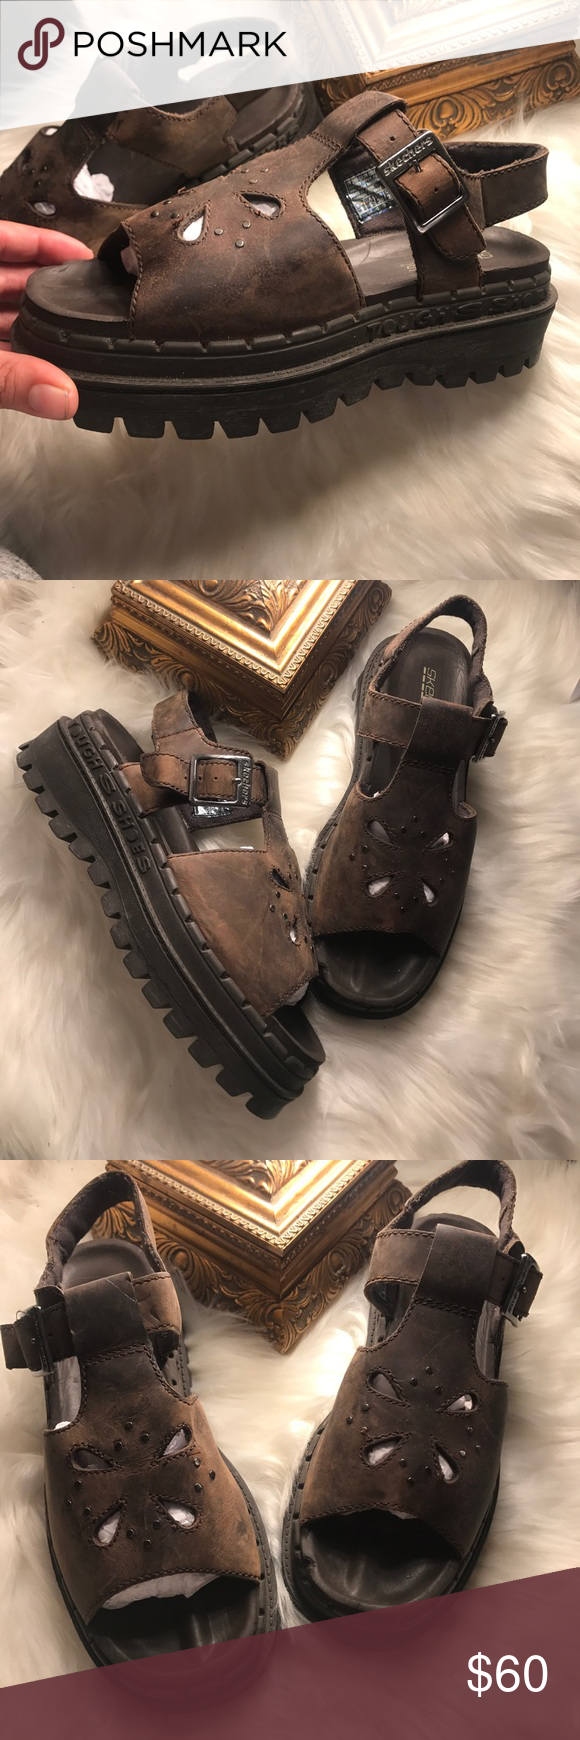 Skechers Jammers Vintage Chunky Sandals Grunge With Images